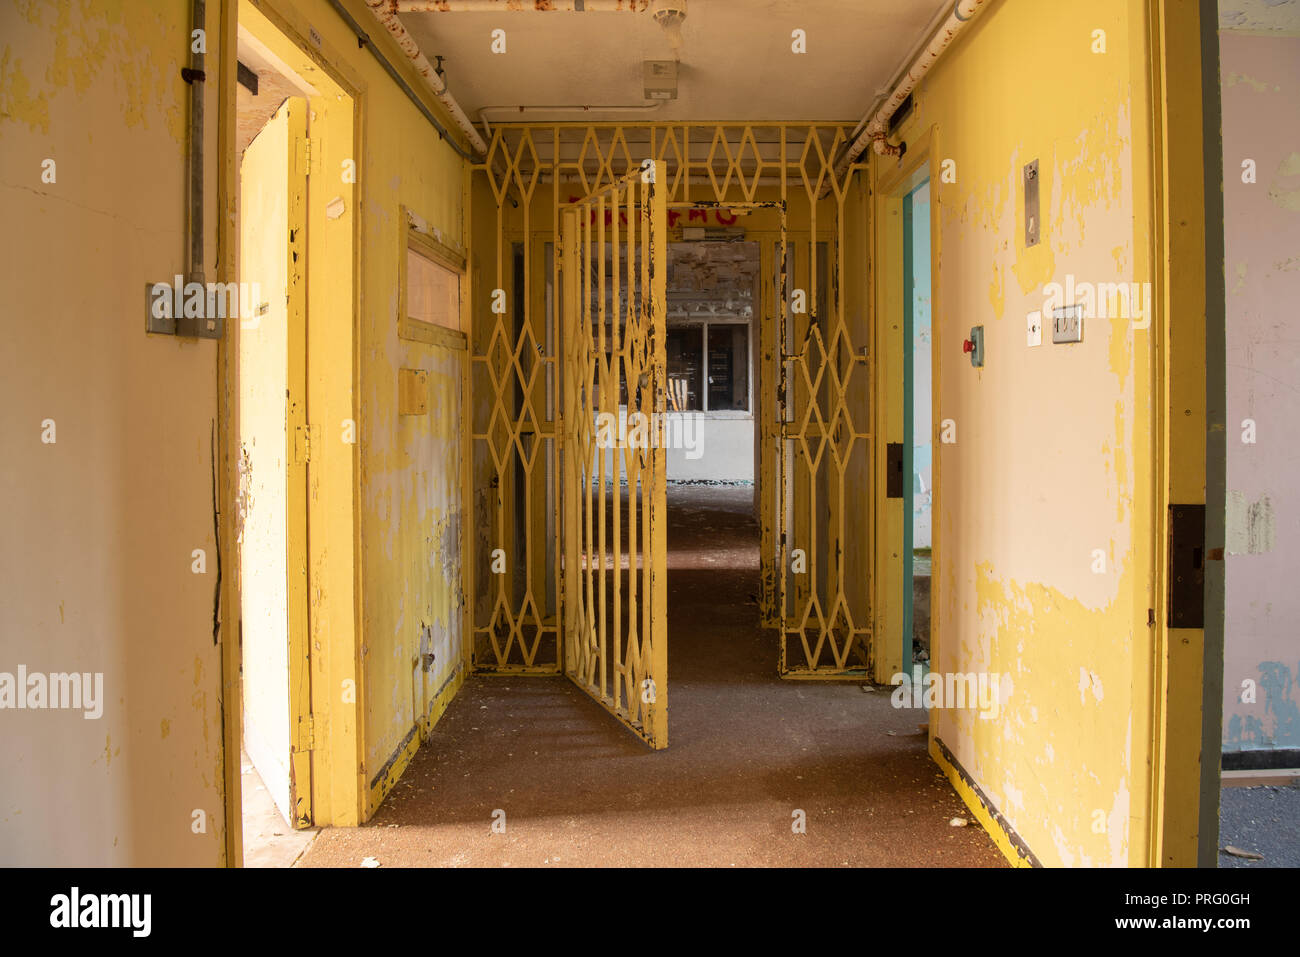 Steel gate at the end of a corridor wing of an abandoned prison. - Stock Image